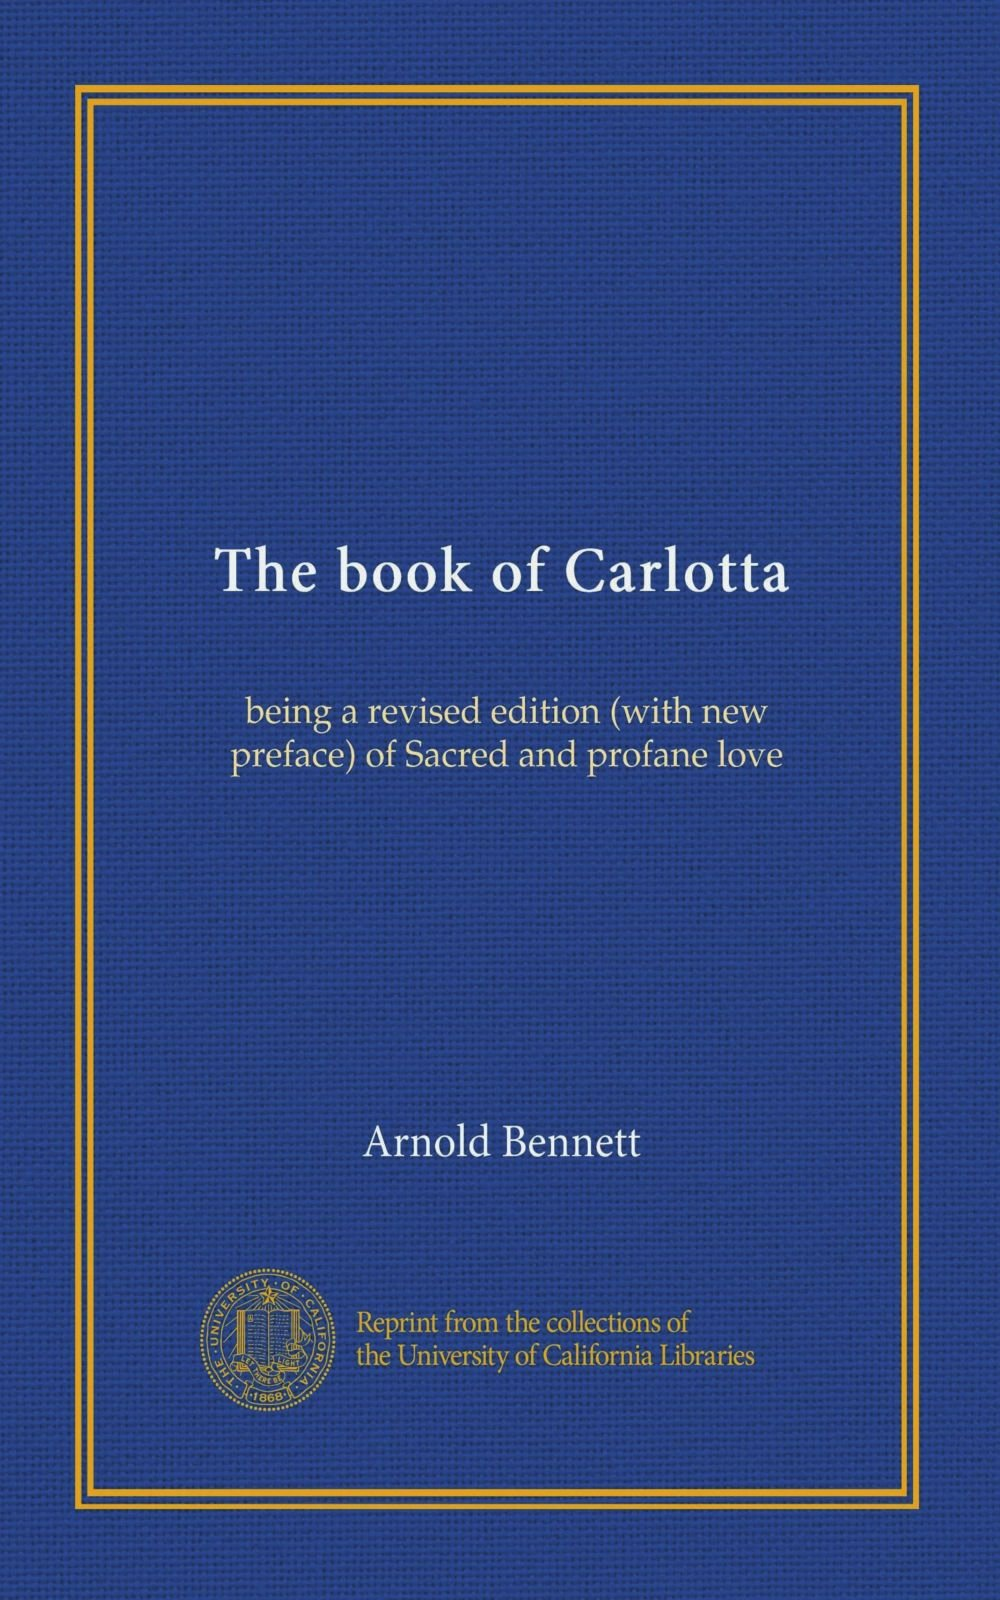 Download The book of Carlotta (Vol-1): being a revised edition (with new preface) of Sacred and profane love PDF